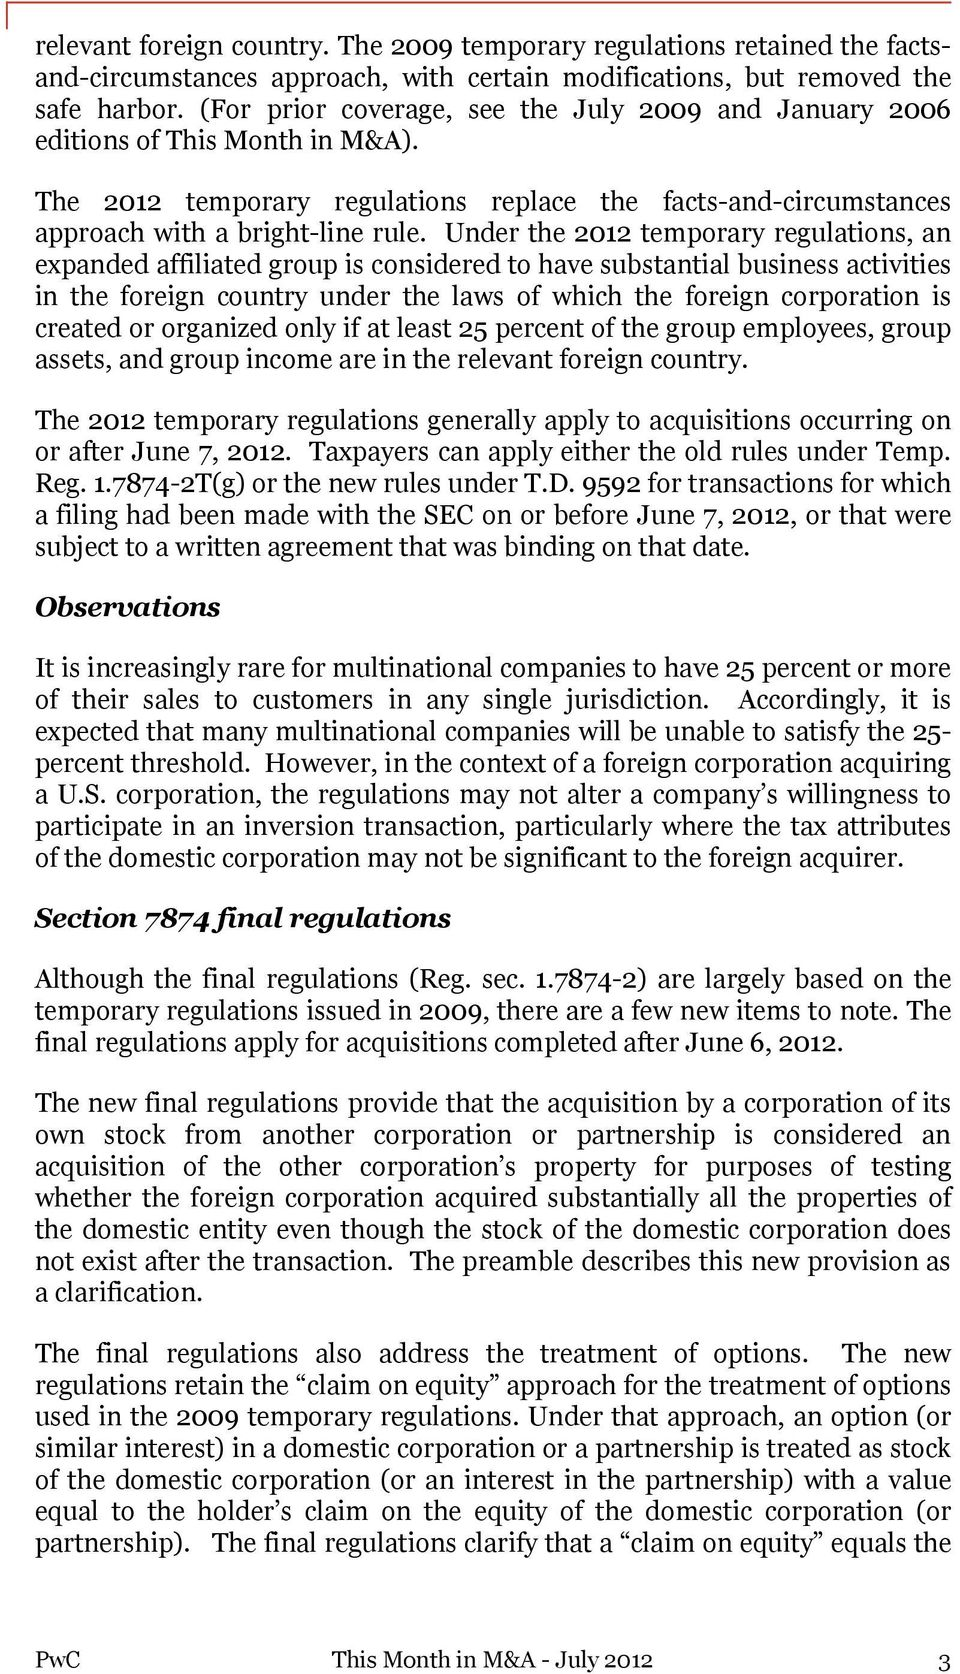 Under the 2012 temporary regulations, an expanded affiliated group is considered to have substantial business activities in the foreign country under the laws of which the foreign corporation is